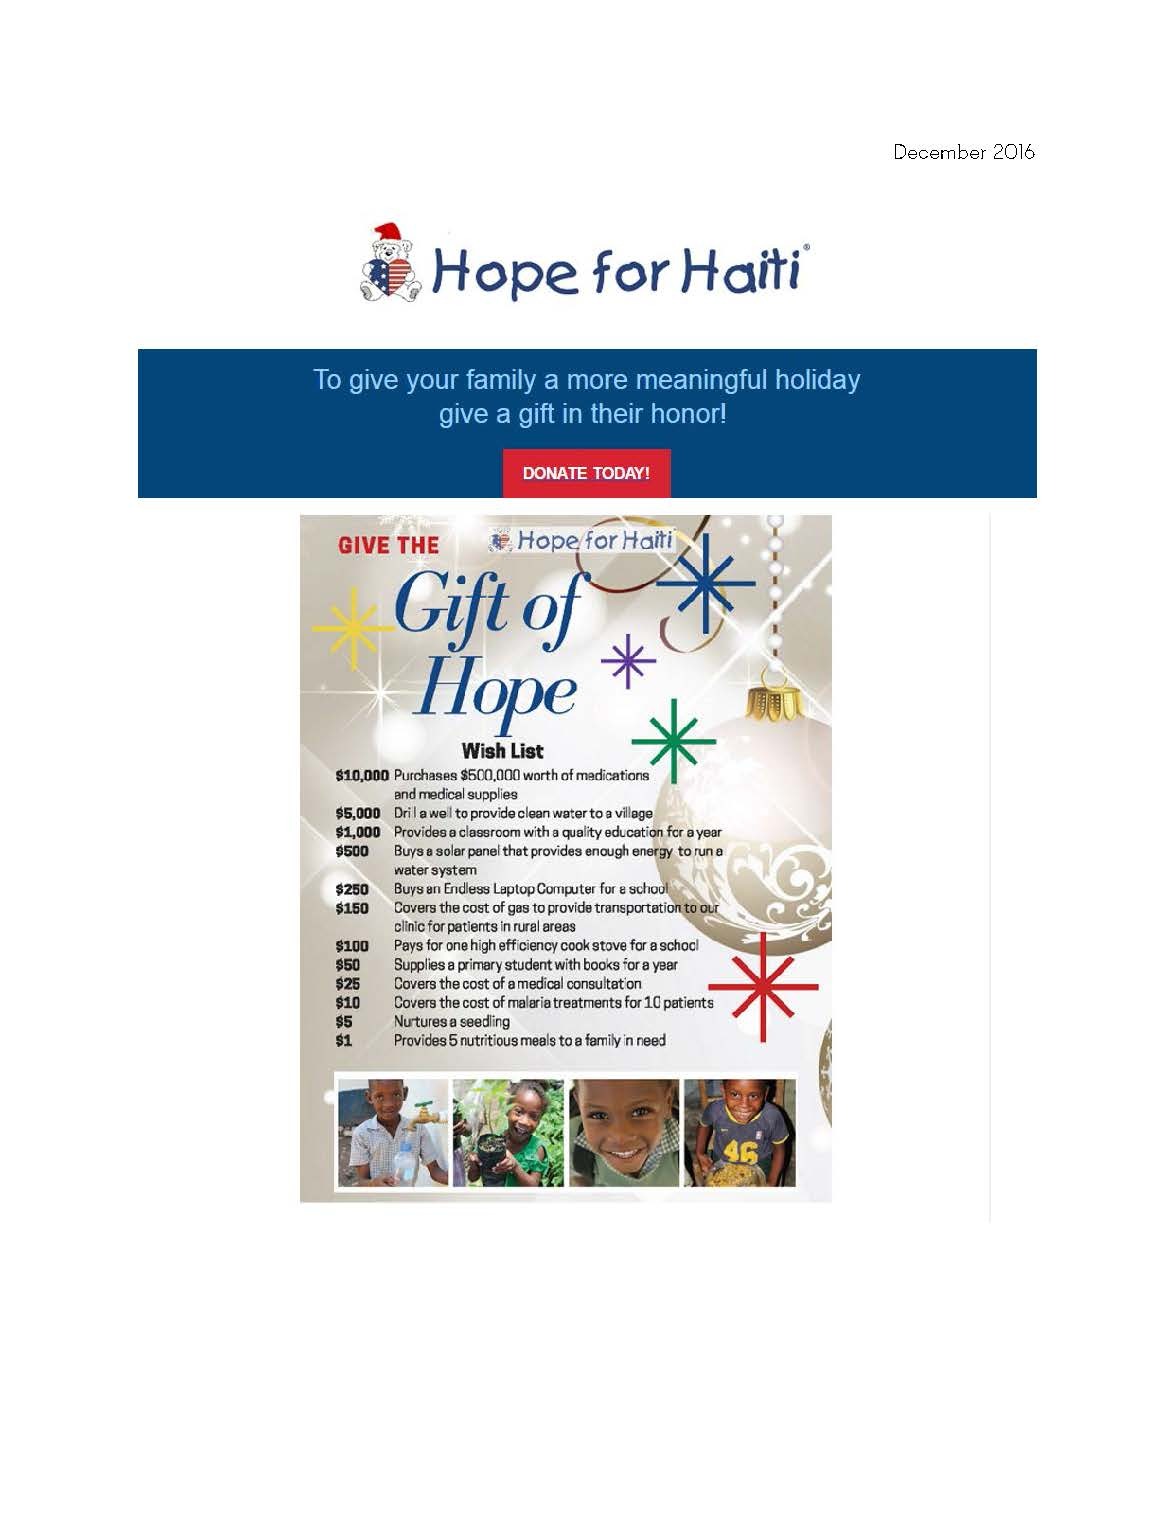 December 2016- Give the Gift of Hope